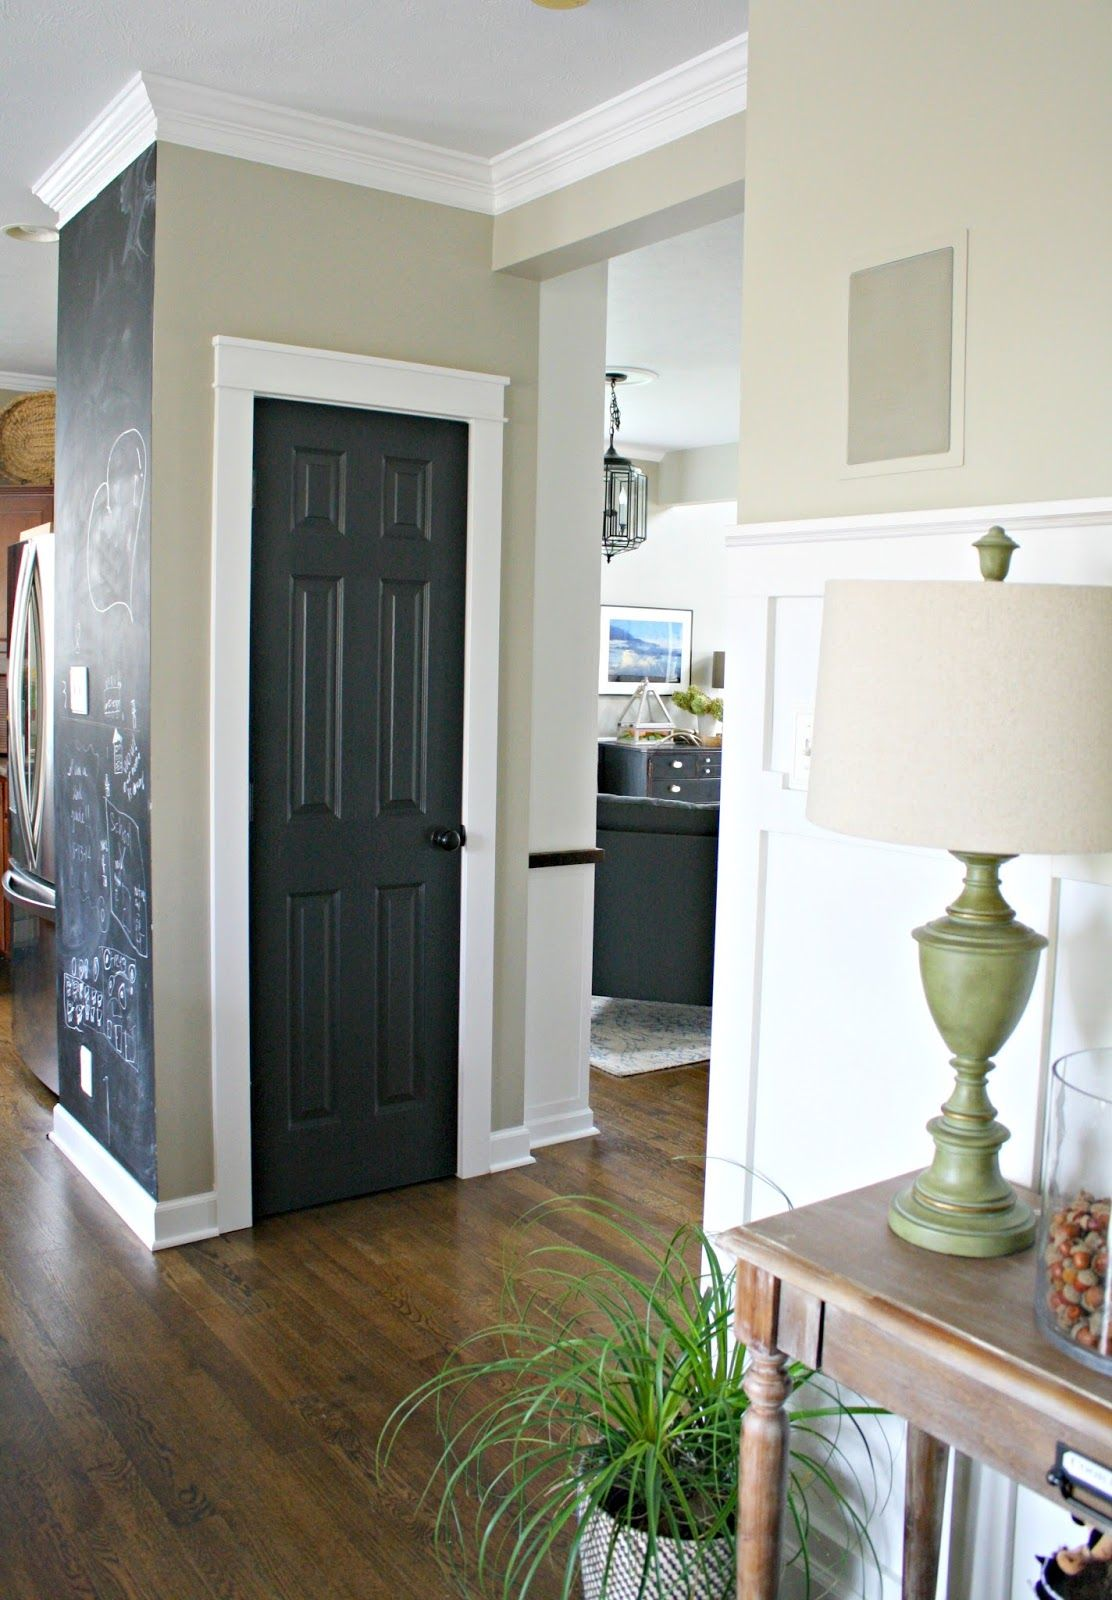 Black Interior Doors With White Trim   What A Great Look! Thrifty Decor  Chick